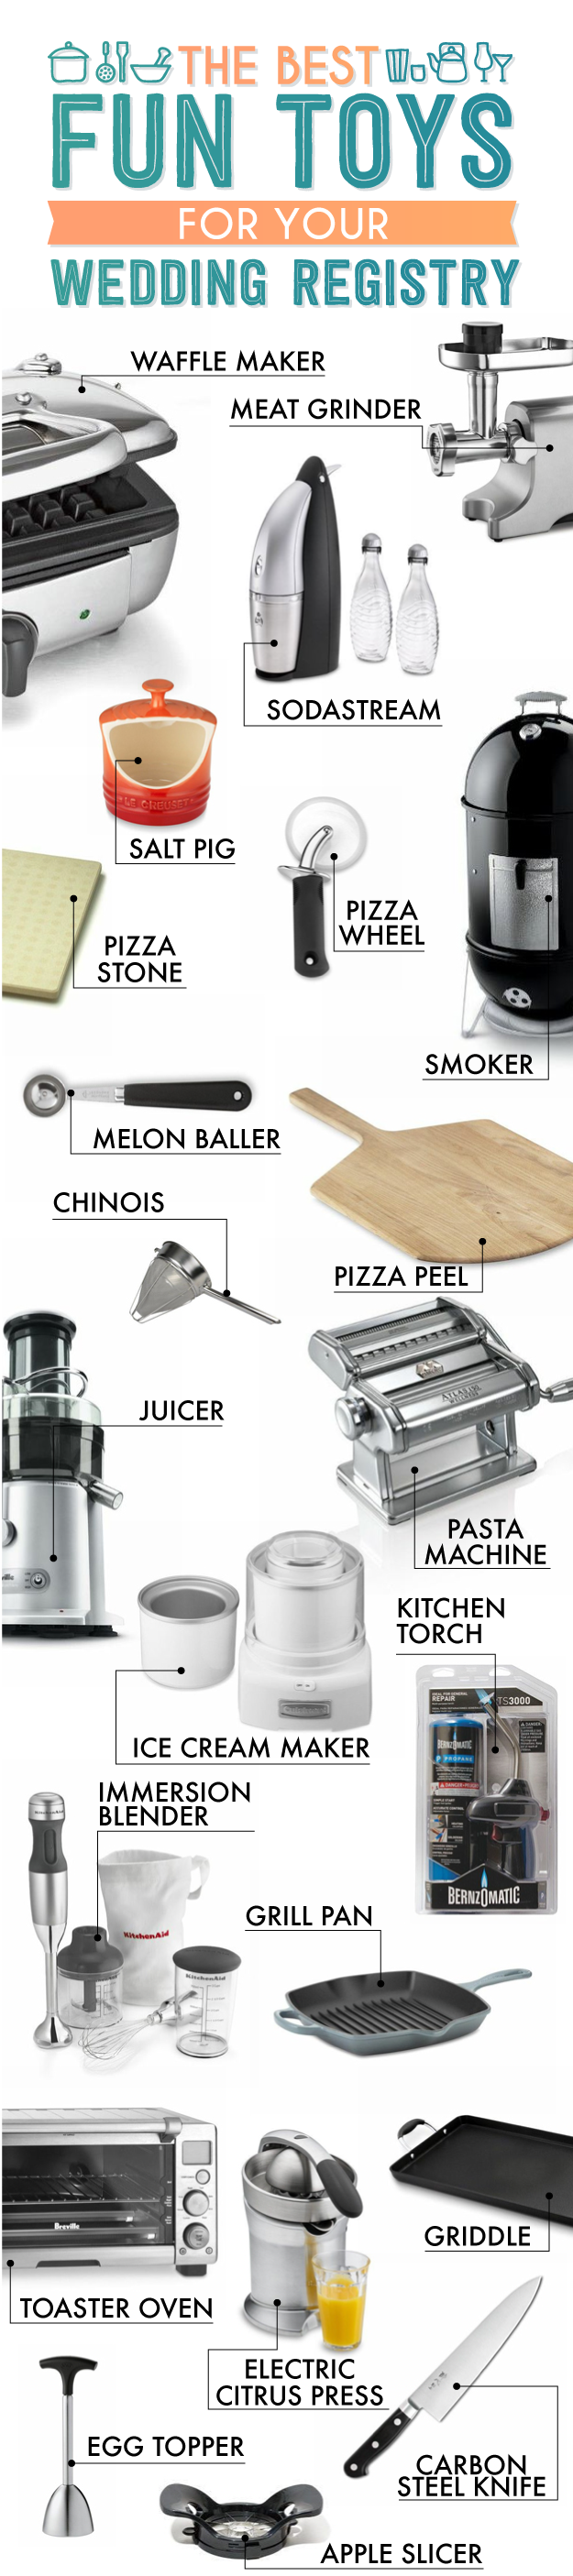 The Essential Wedding Registry List For Your Kitchen (With